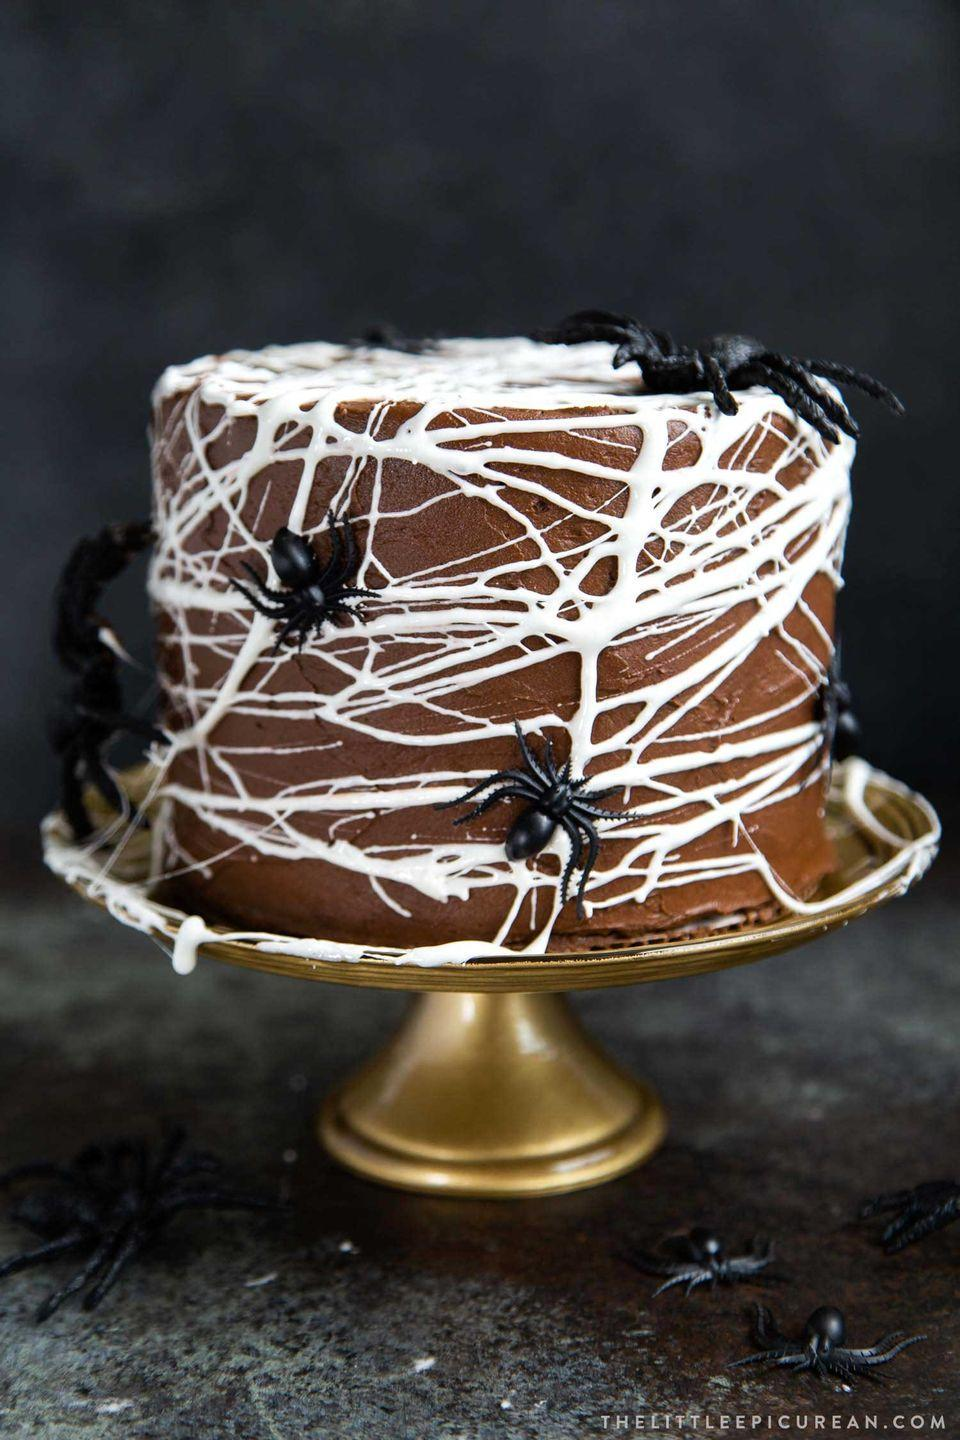 """<p>Three layers of rich chocolate cake get the Halloween treatment with drizzled melted marshmallow and some faux spiders. </p><p><a class=""""link rapid-noclick-resp"""" href=""""https://www.thelittleepicurean.com/2019/10/chocolate-spider-web-cake.html"""" rel=""""nofollow noopener"""" target=""""_blank"""" data-ylk=""""slk:GET THE RECIPE"""">GET THE RECIPE</a></p>"""